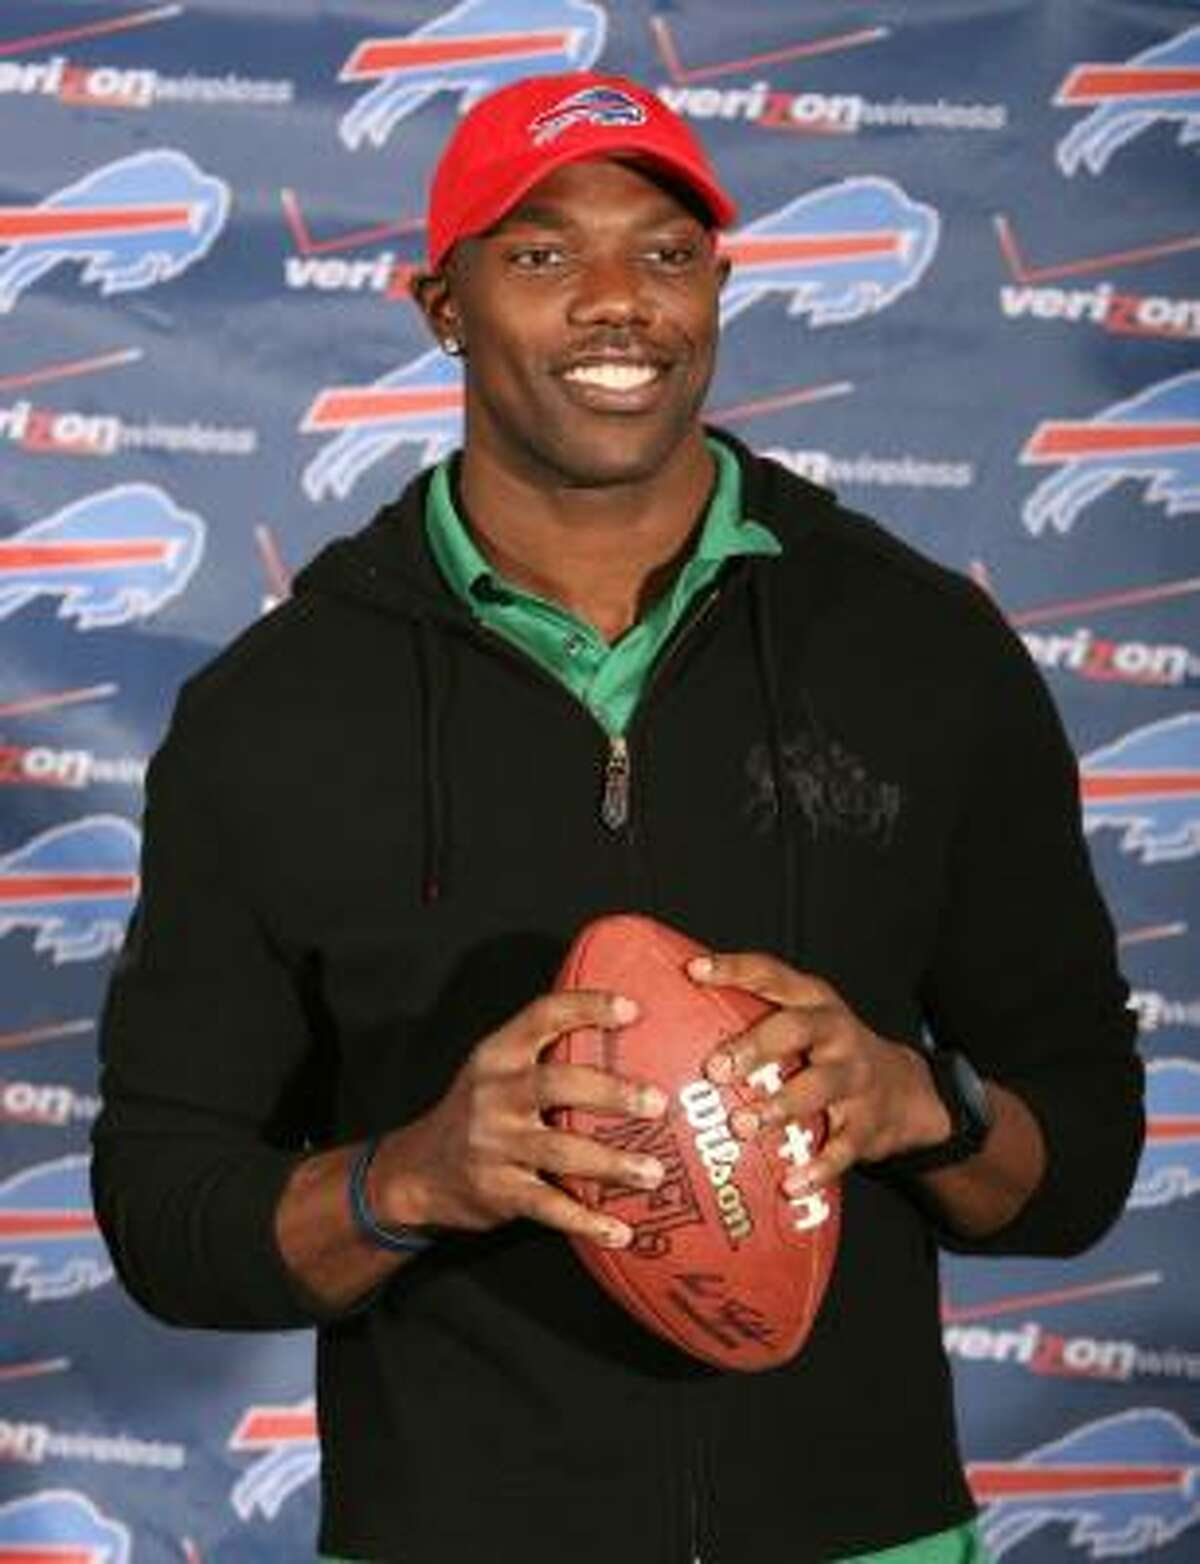 Wide receiver Terrell Owens signed a one-year, $6.5 million deal with the Buffalo Bills on Saturday, only two days after being released by the Cowboys.